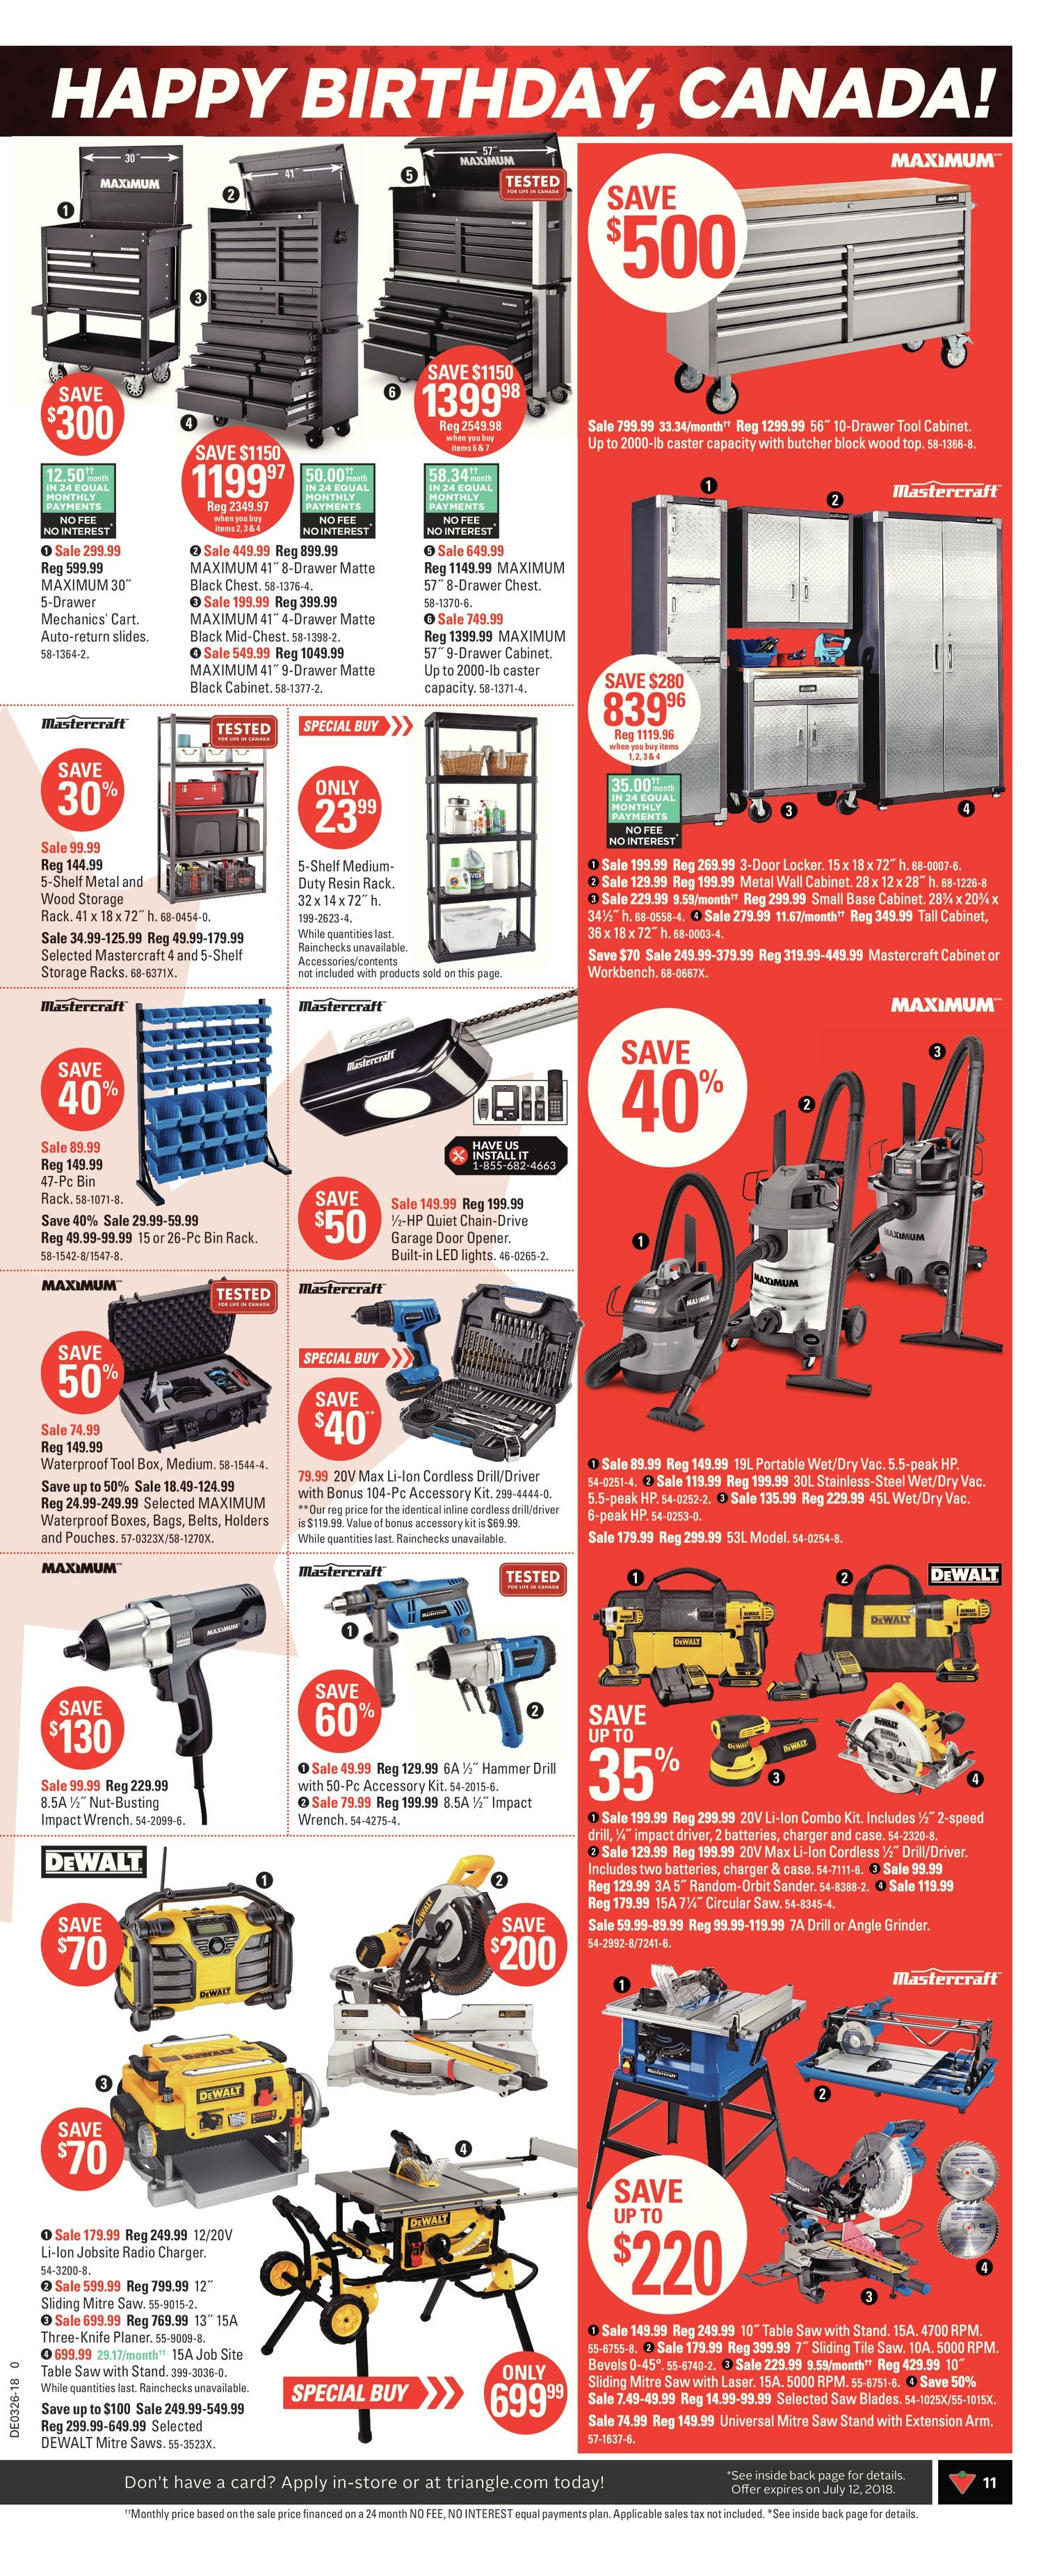 Canadian Tire Weekly Flyer 8 Day Event The Big O Canada Sale Us Blaster Products Car Audio Wiring Kits Usb 6128 Jun 21 28